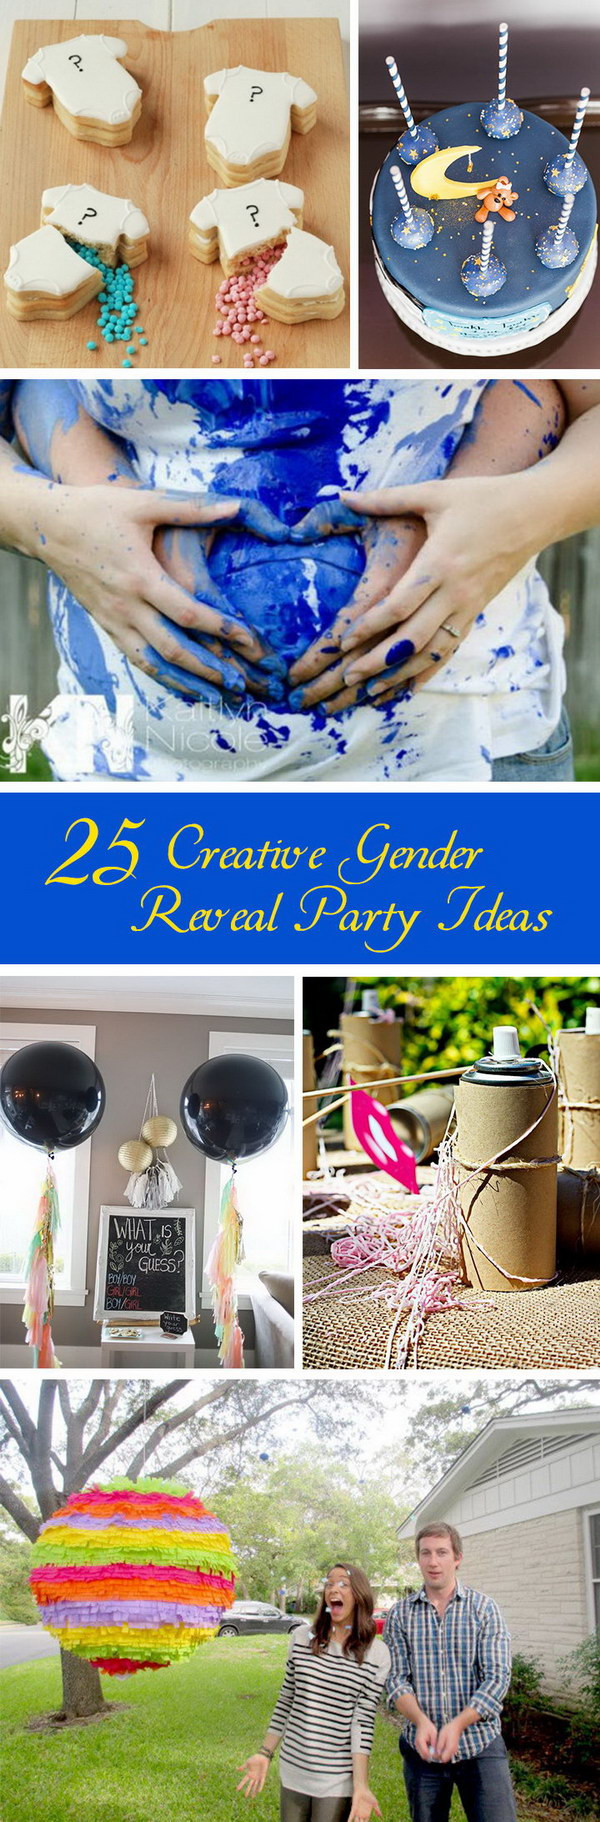 Creative Gender Reveal Party Ideas  25 Creative Gender Reveal Party Ideas Hative